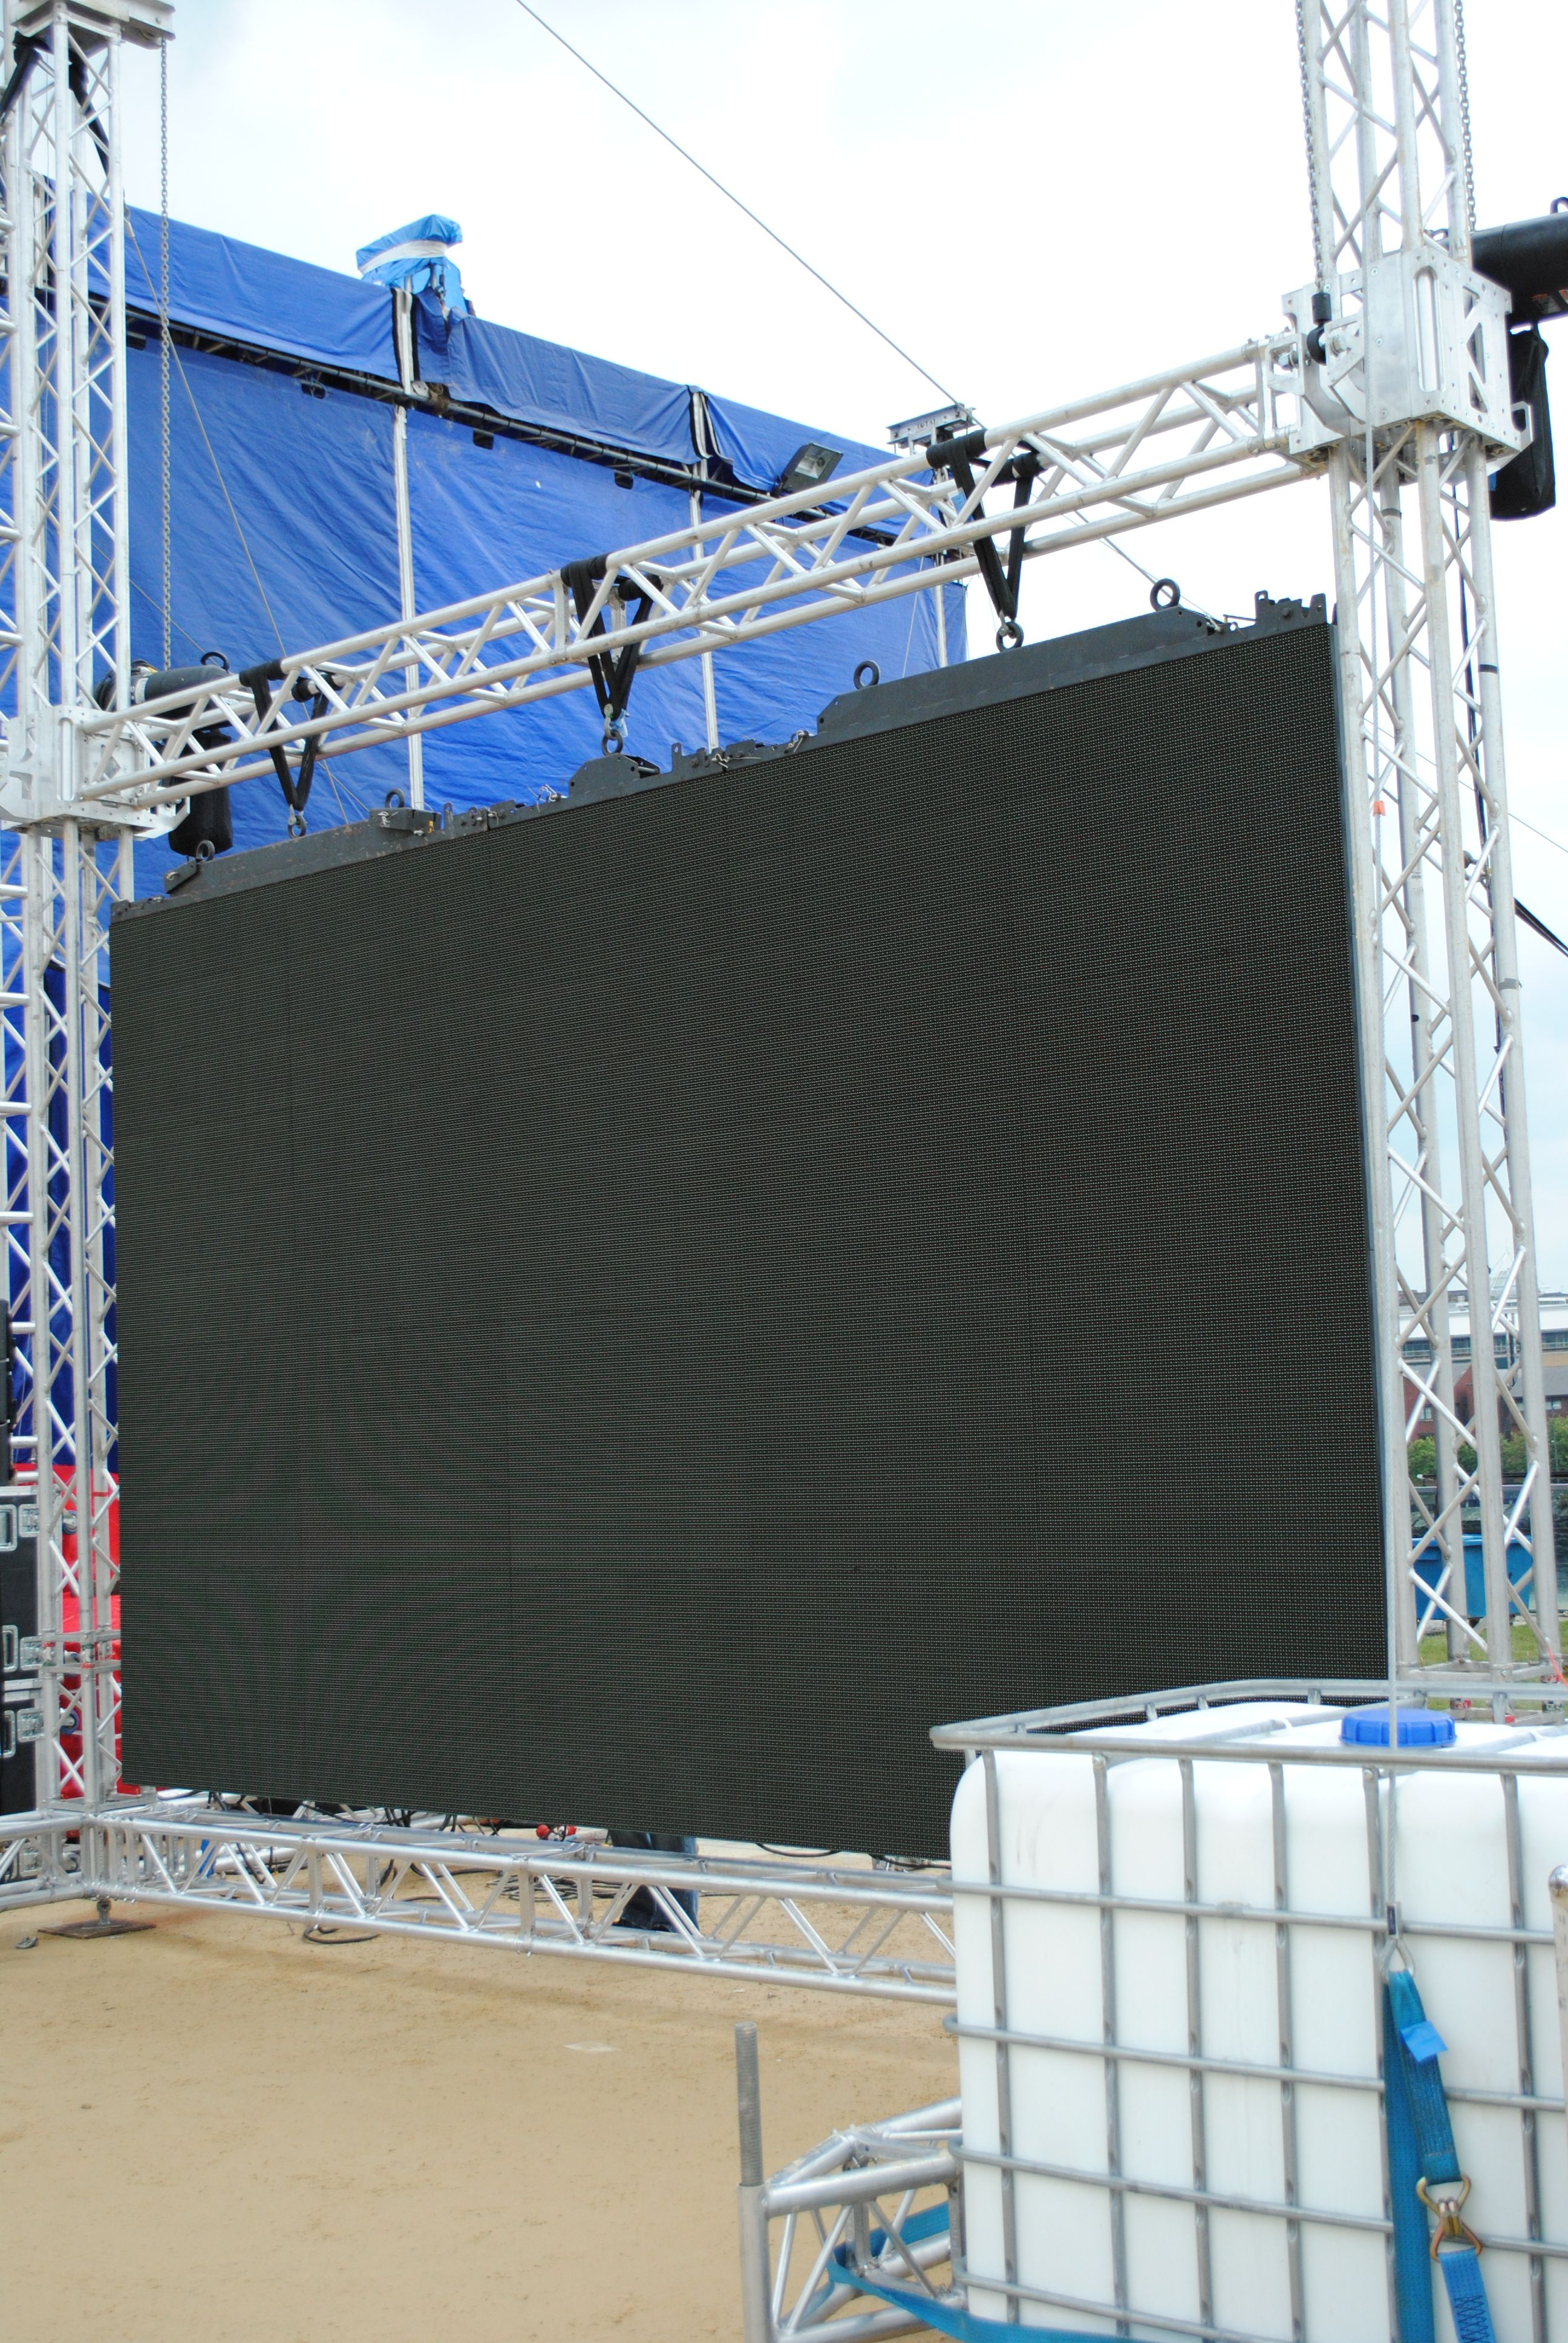 The screens are up!